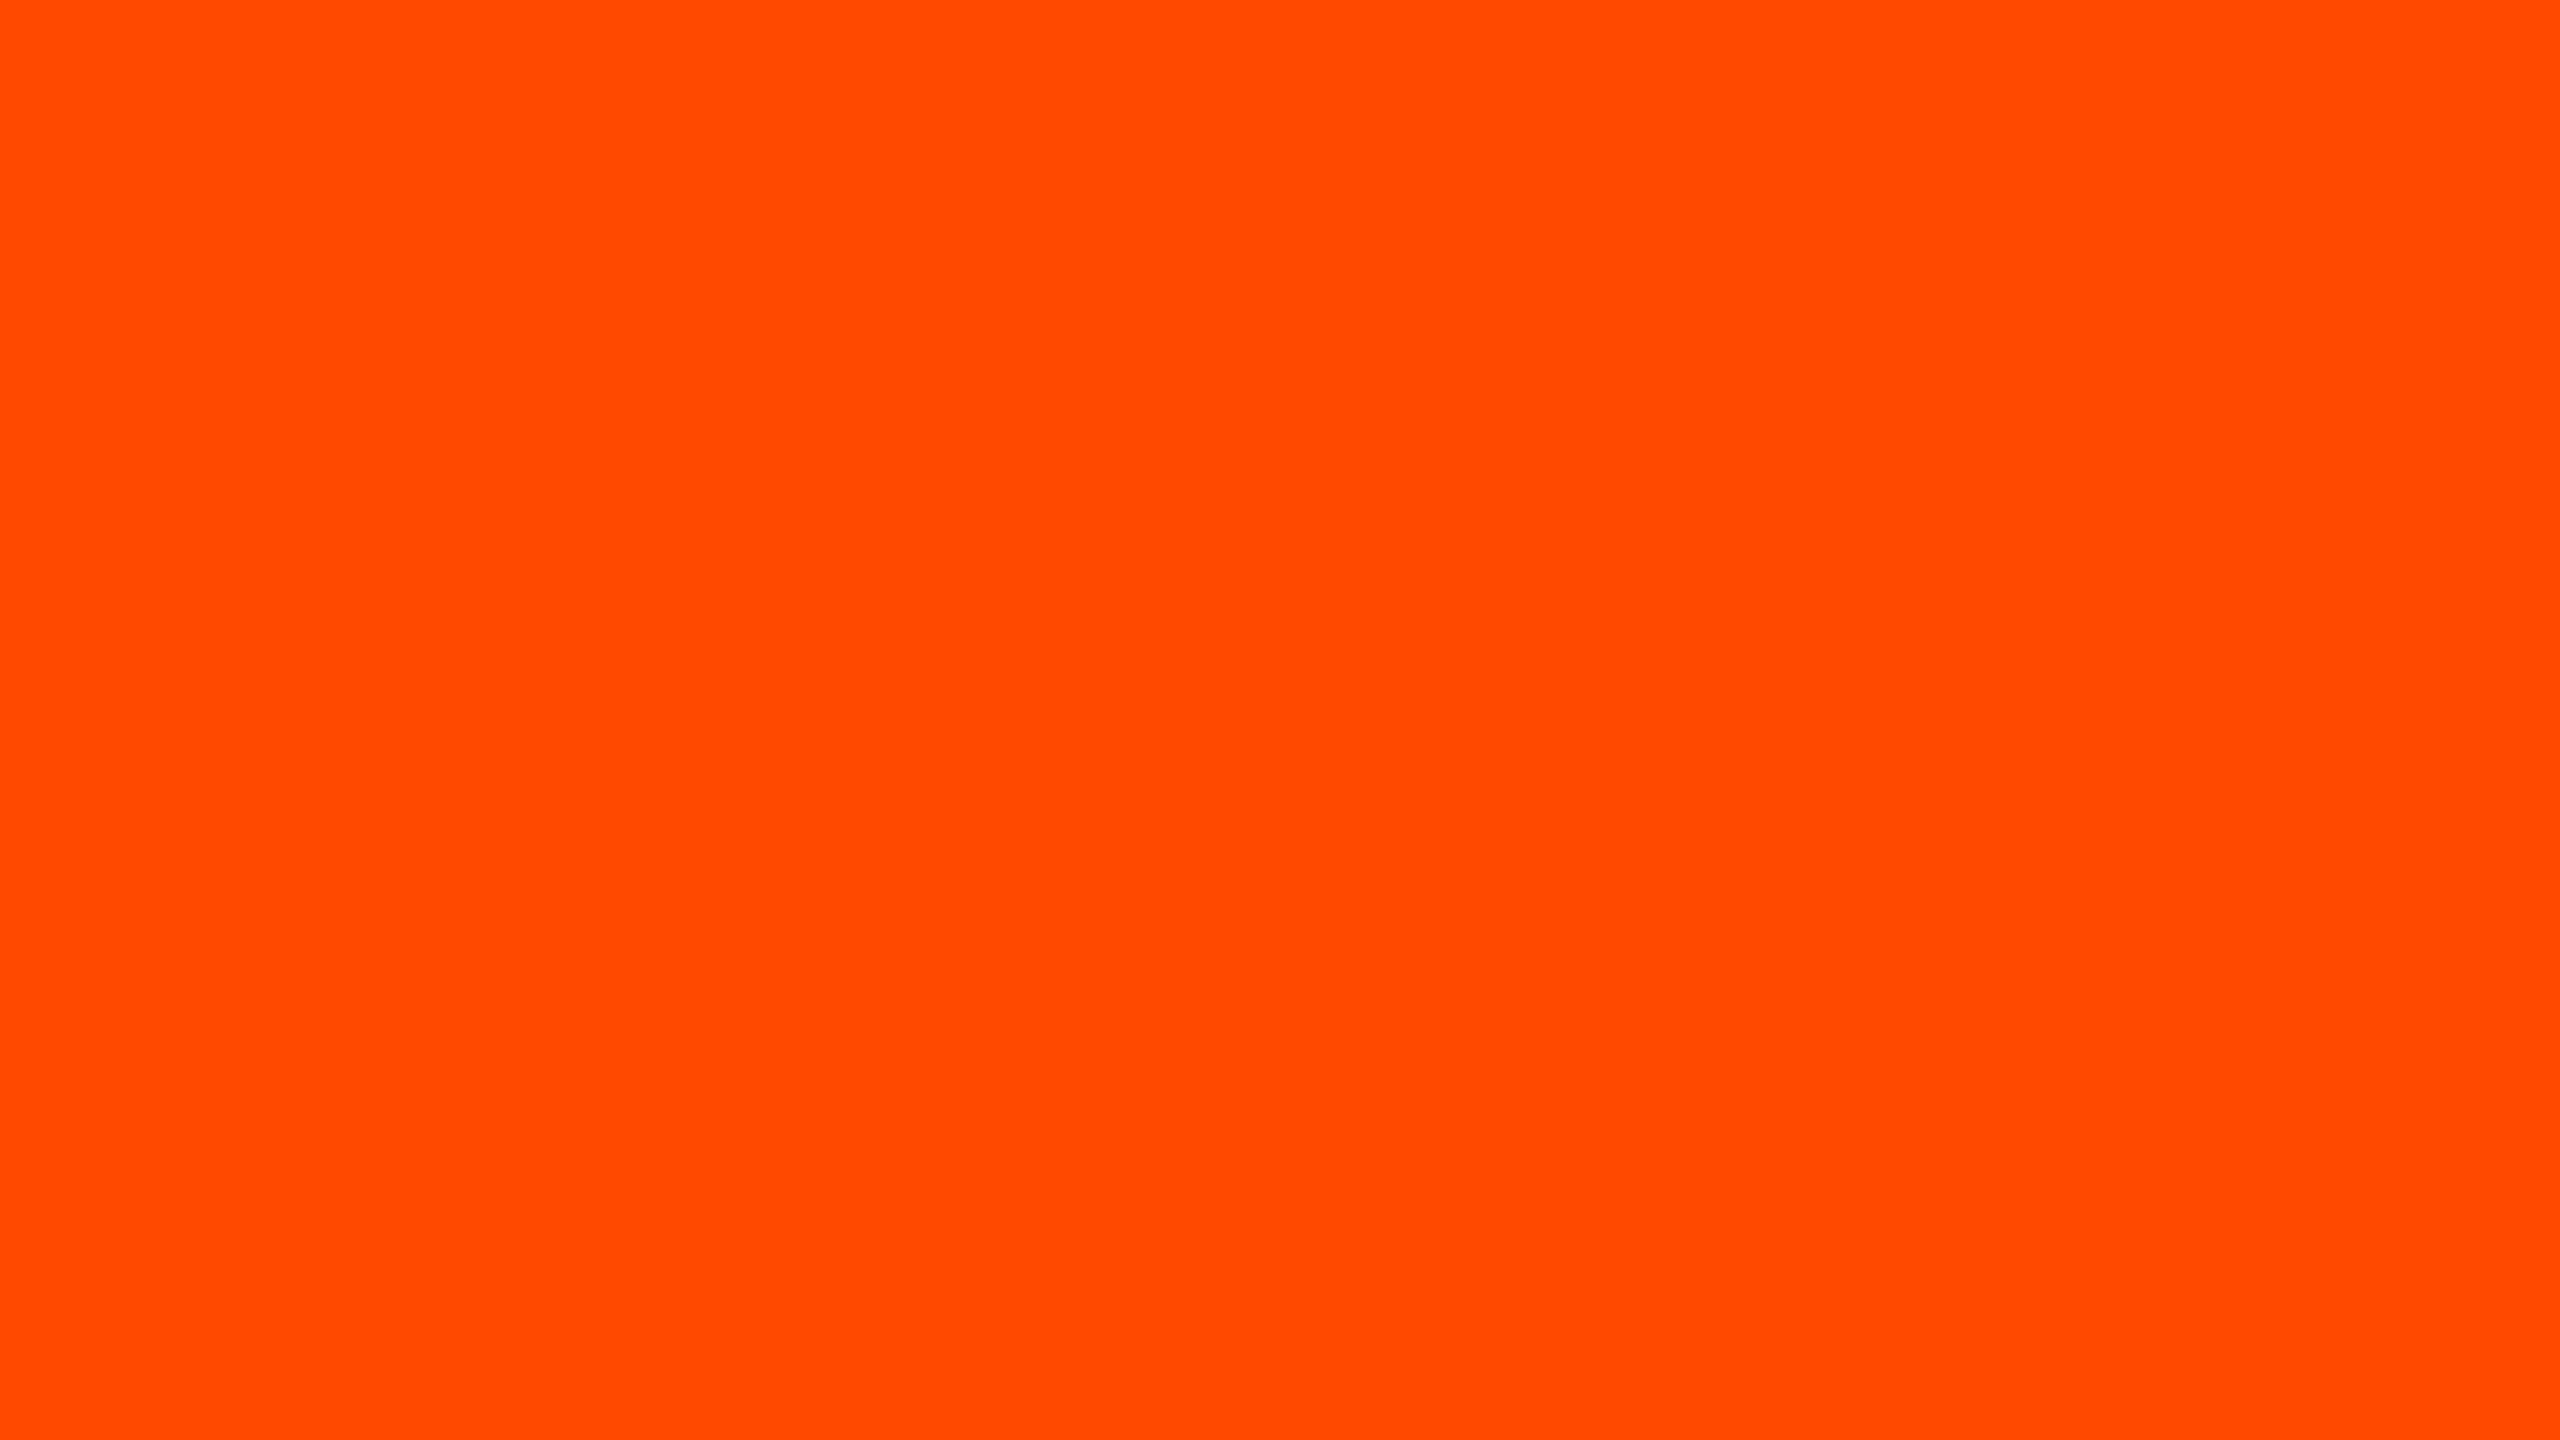 2560x1440 Orange HD Background Wallpaper 09311